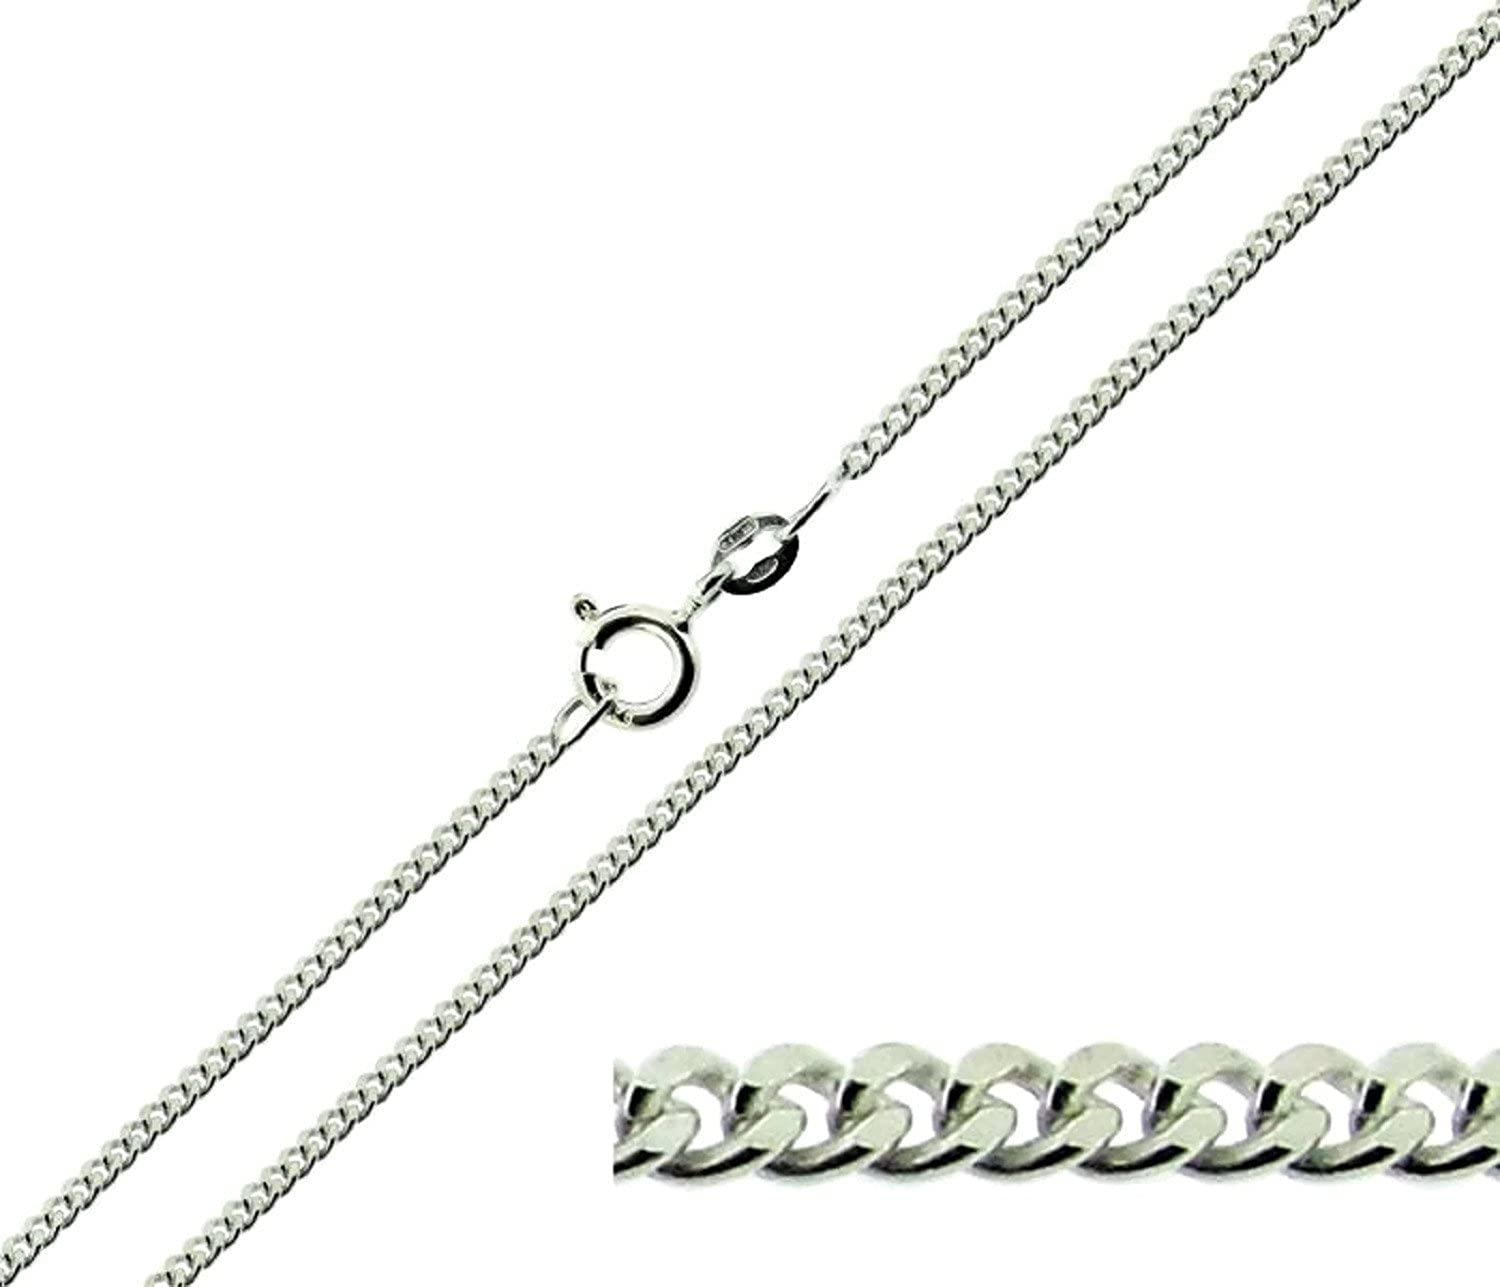 """Solid Italian 925 Sterling Silver Long Curb Chain 14/""""16/""""18/""""22/""""24 Inch."""